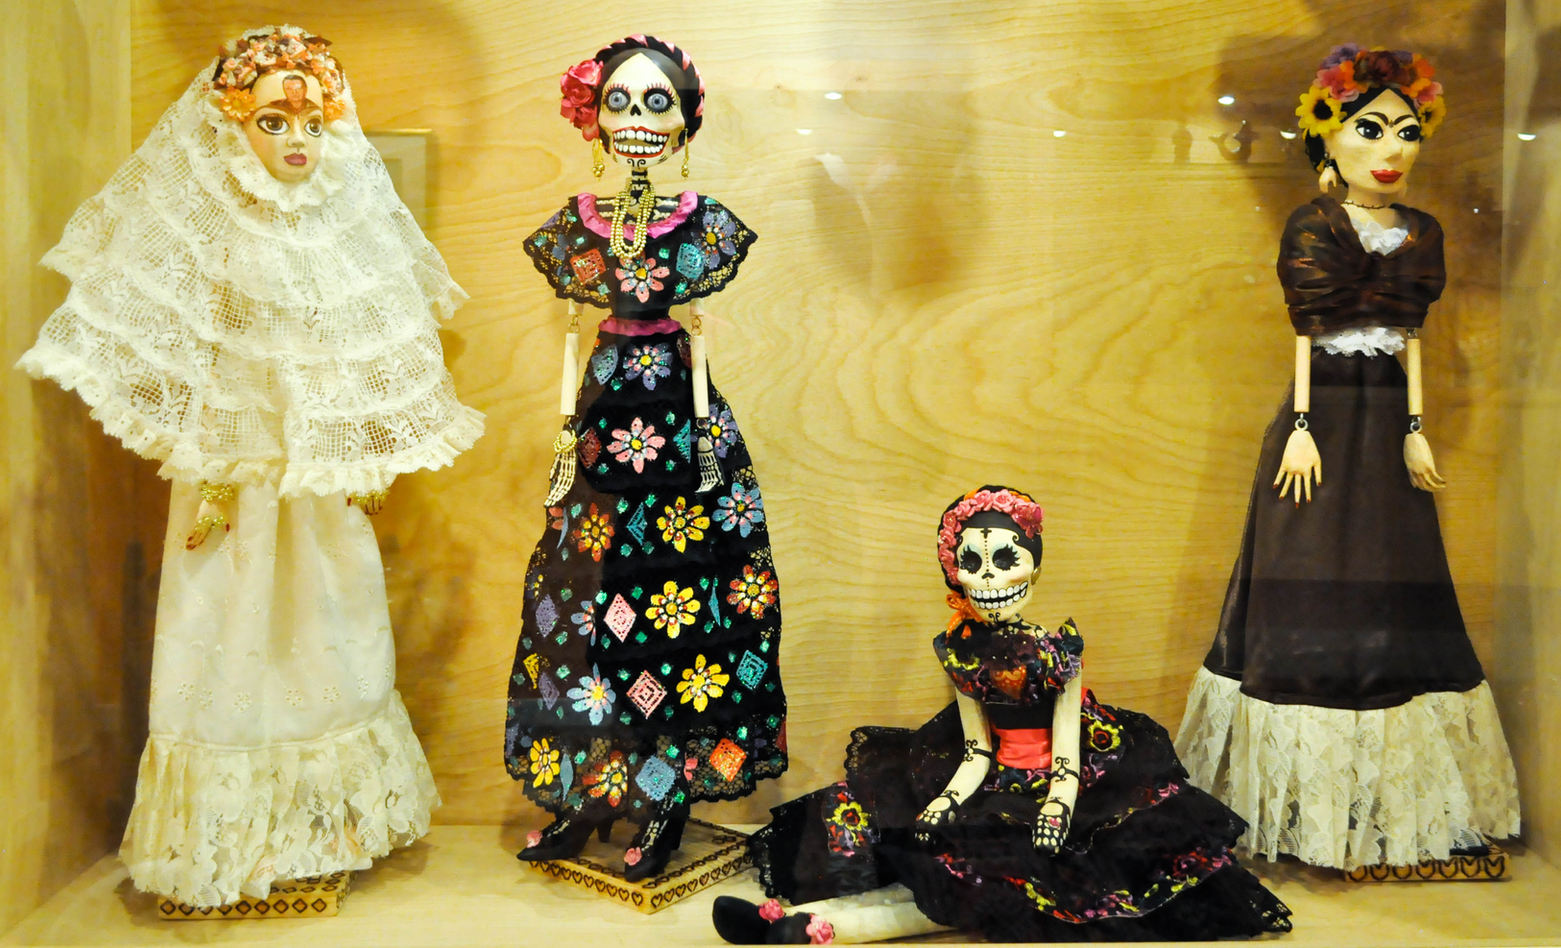 Cristina González (México City, México), Mixed Media Dolls. 2012.